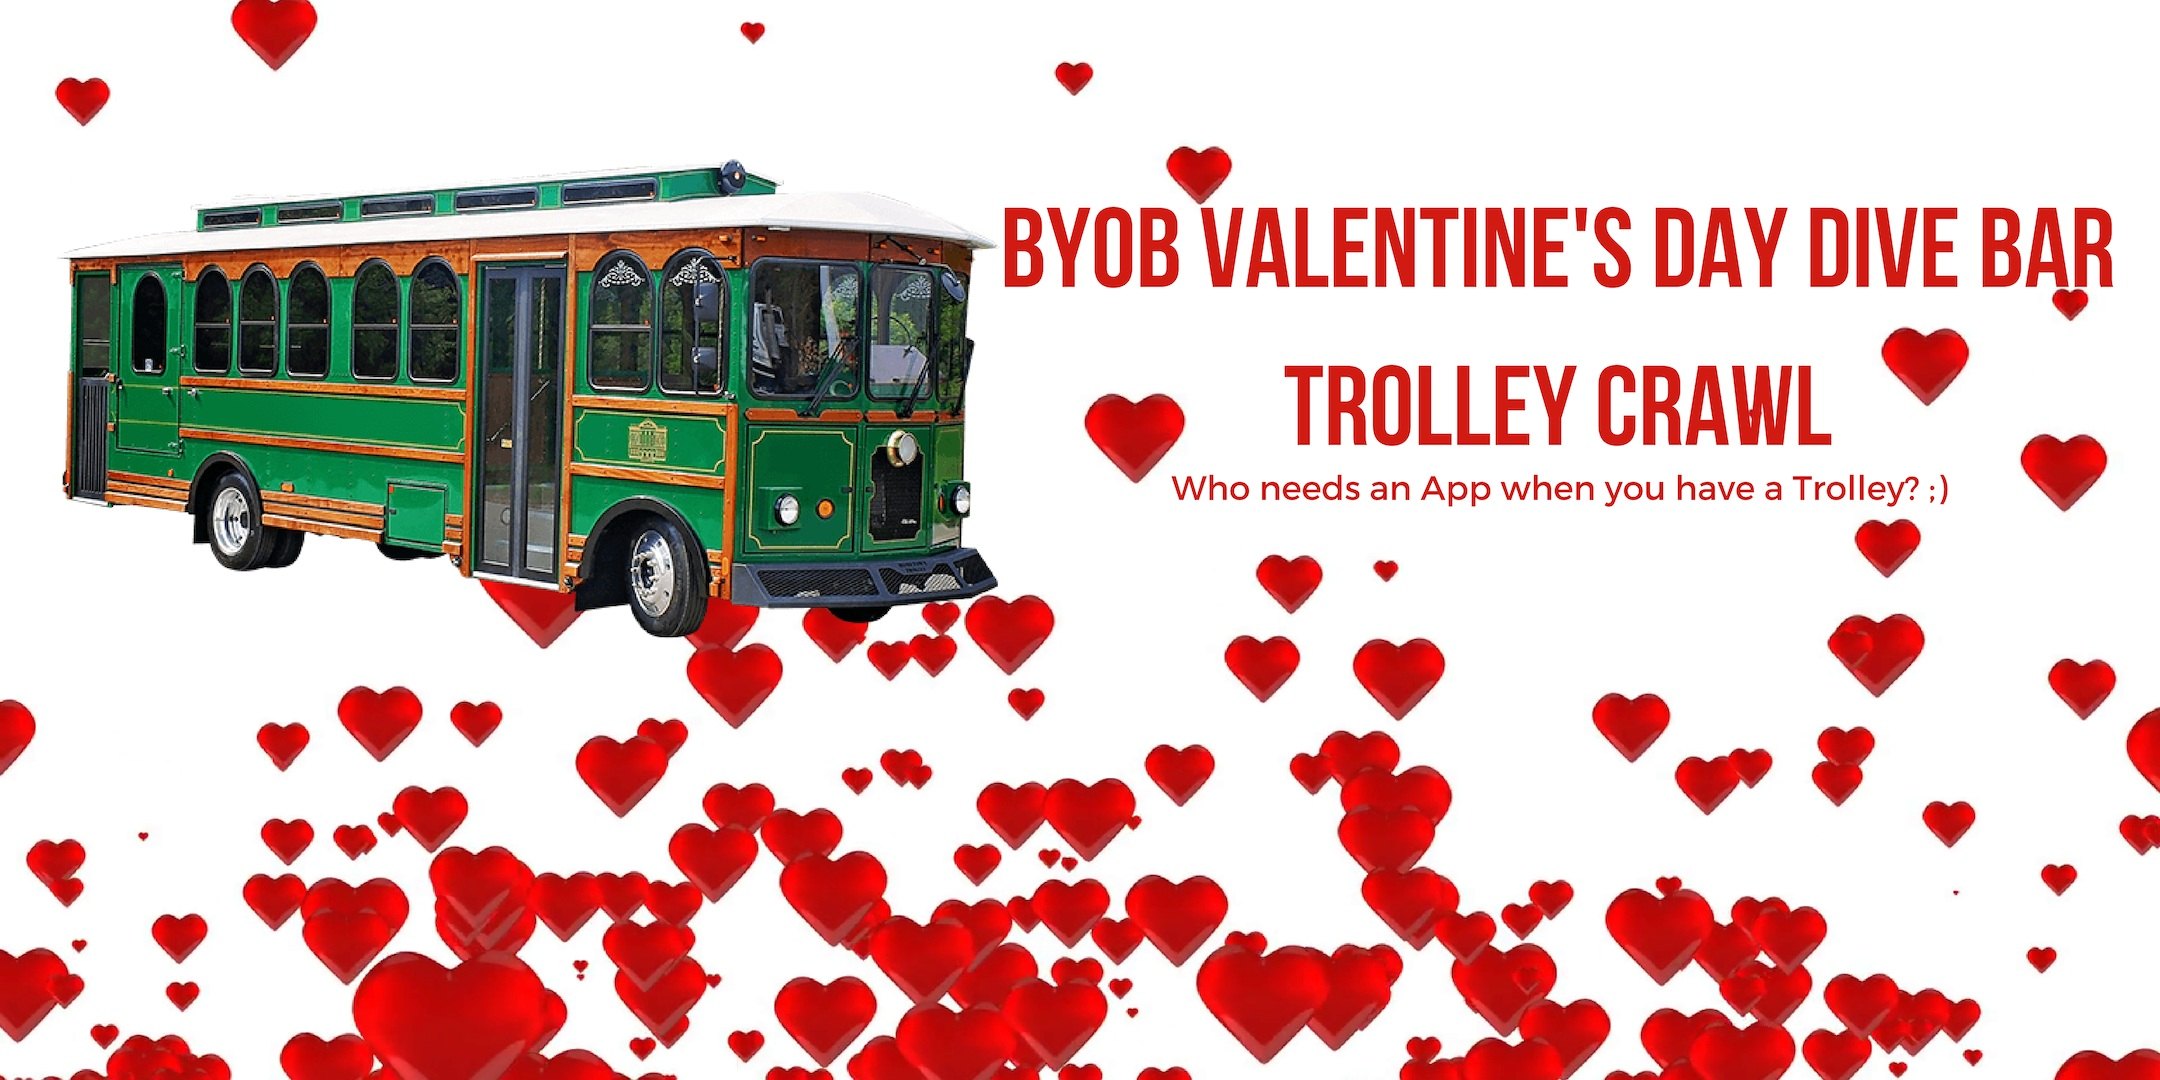 BYOB+Valentine%27s+Day+Dive+Bar+Trolley+Crawl.jpg